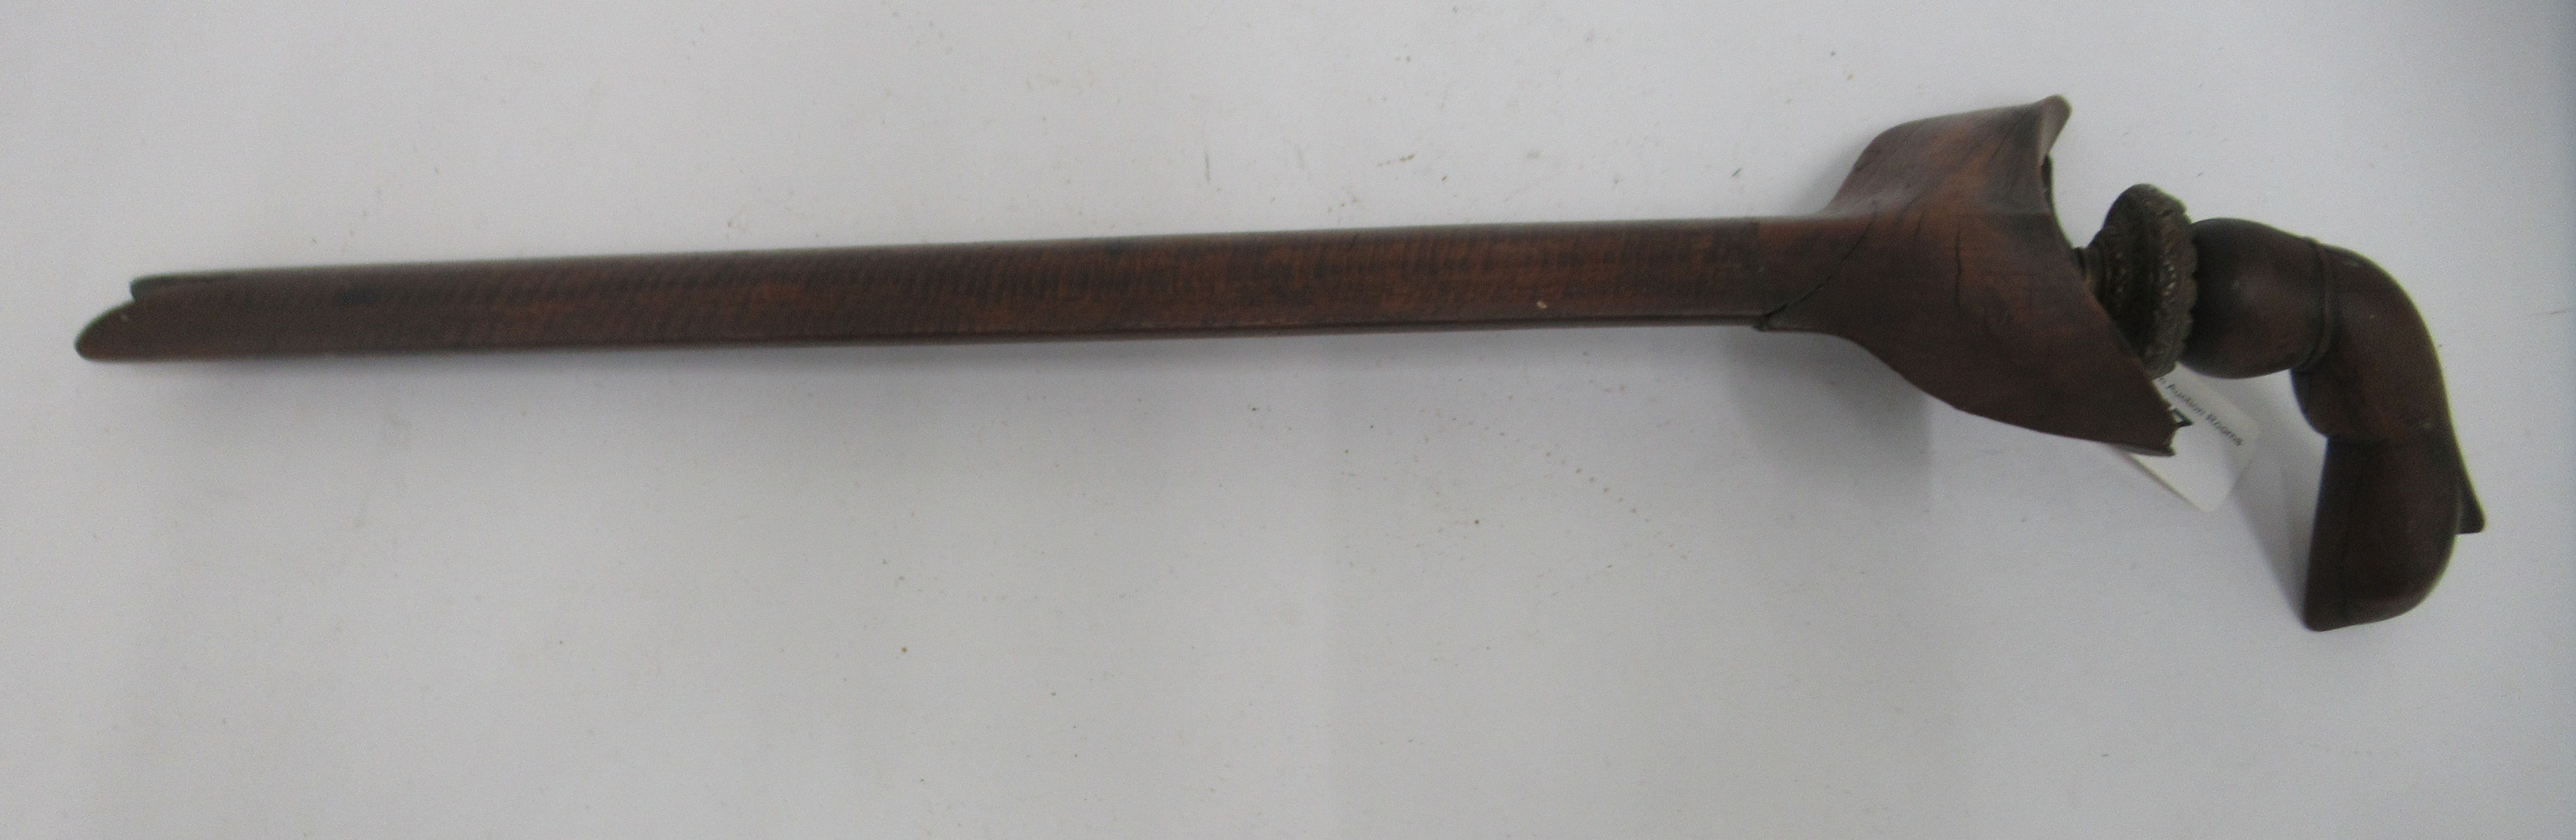 """A mid 19thC Malay Kris with a carved fruitwood handle and scabbard the Damascus blade 14.5""""L - Image 3 of 6"""